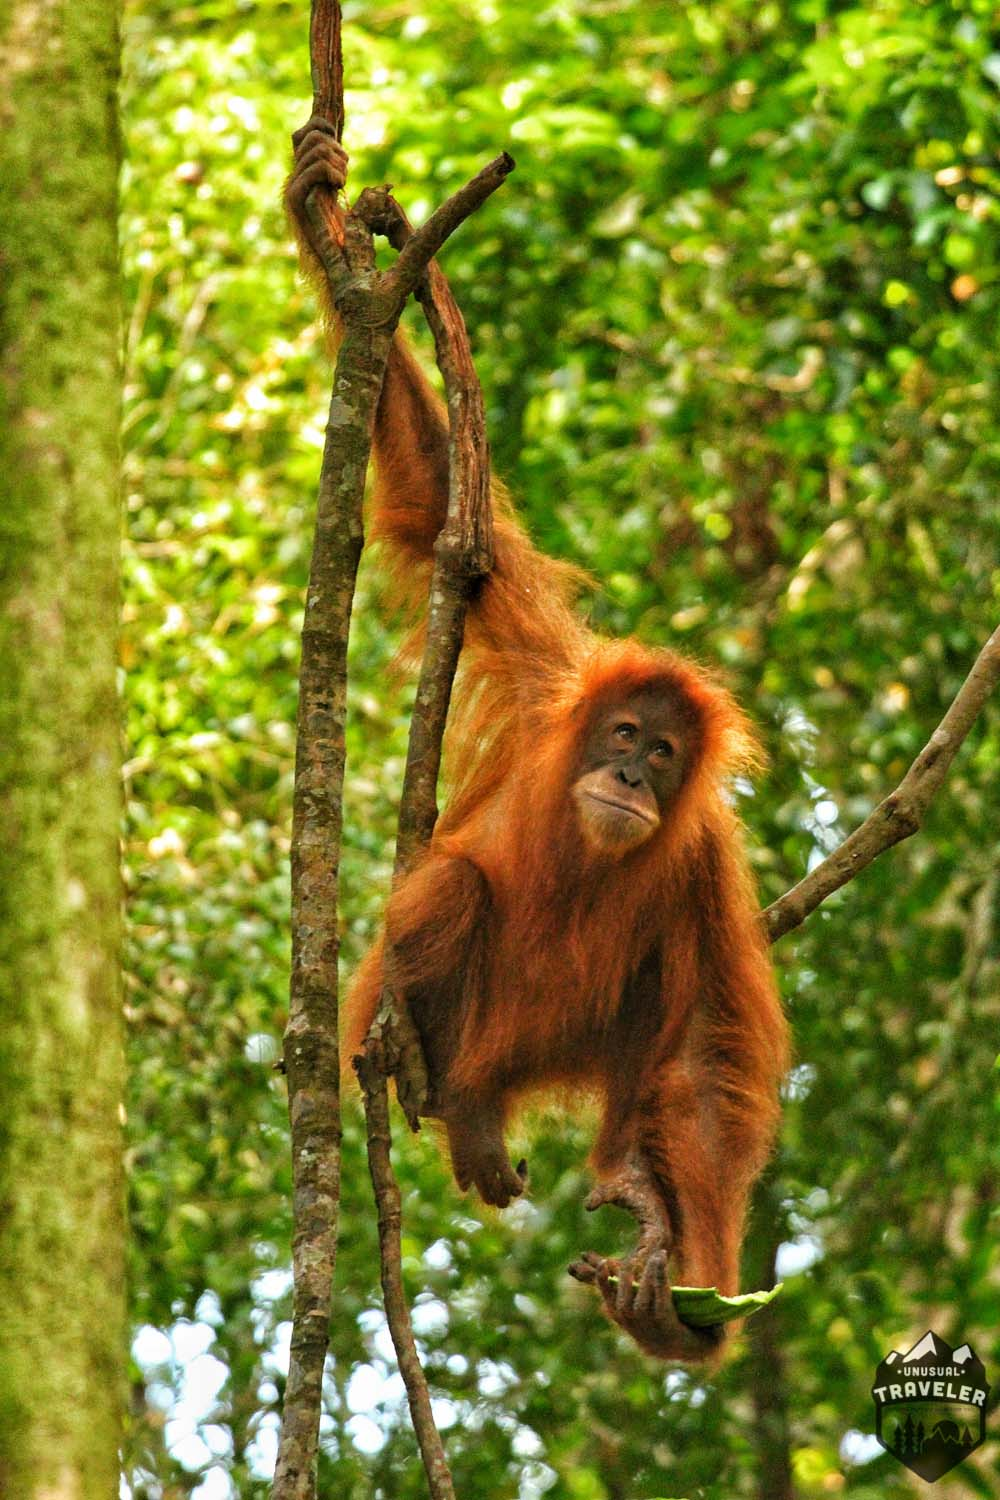 Travel guide to see Orangutan Sumatra Indonesia